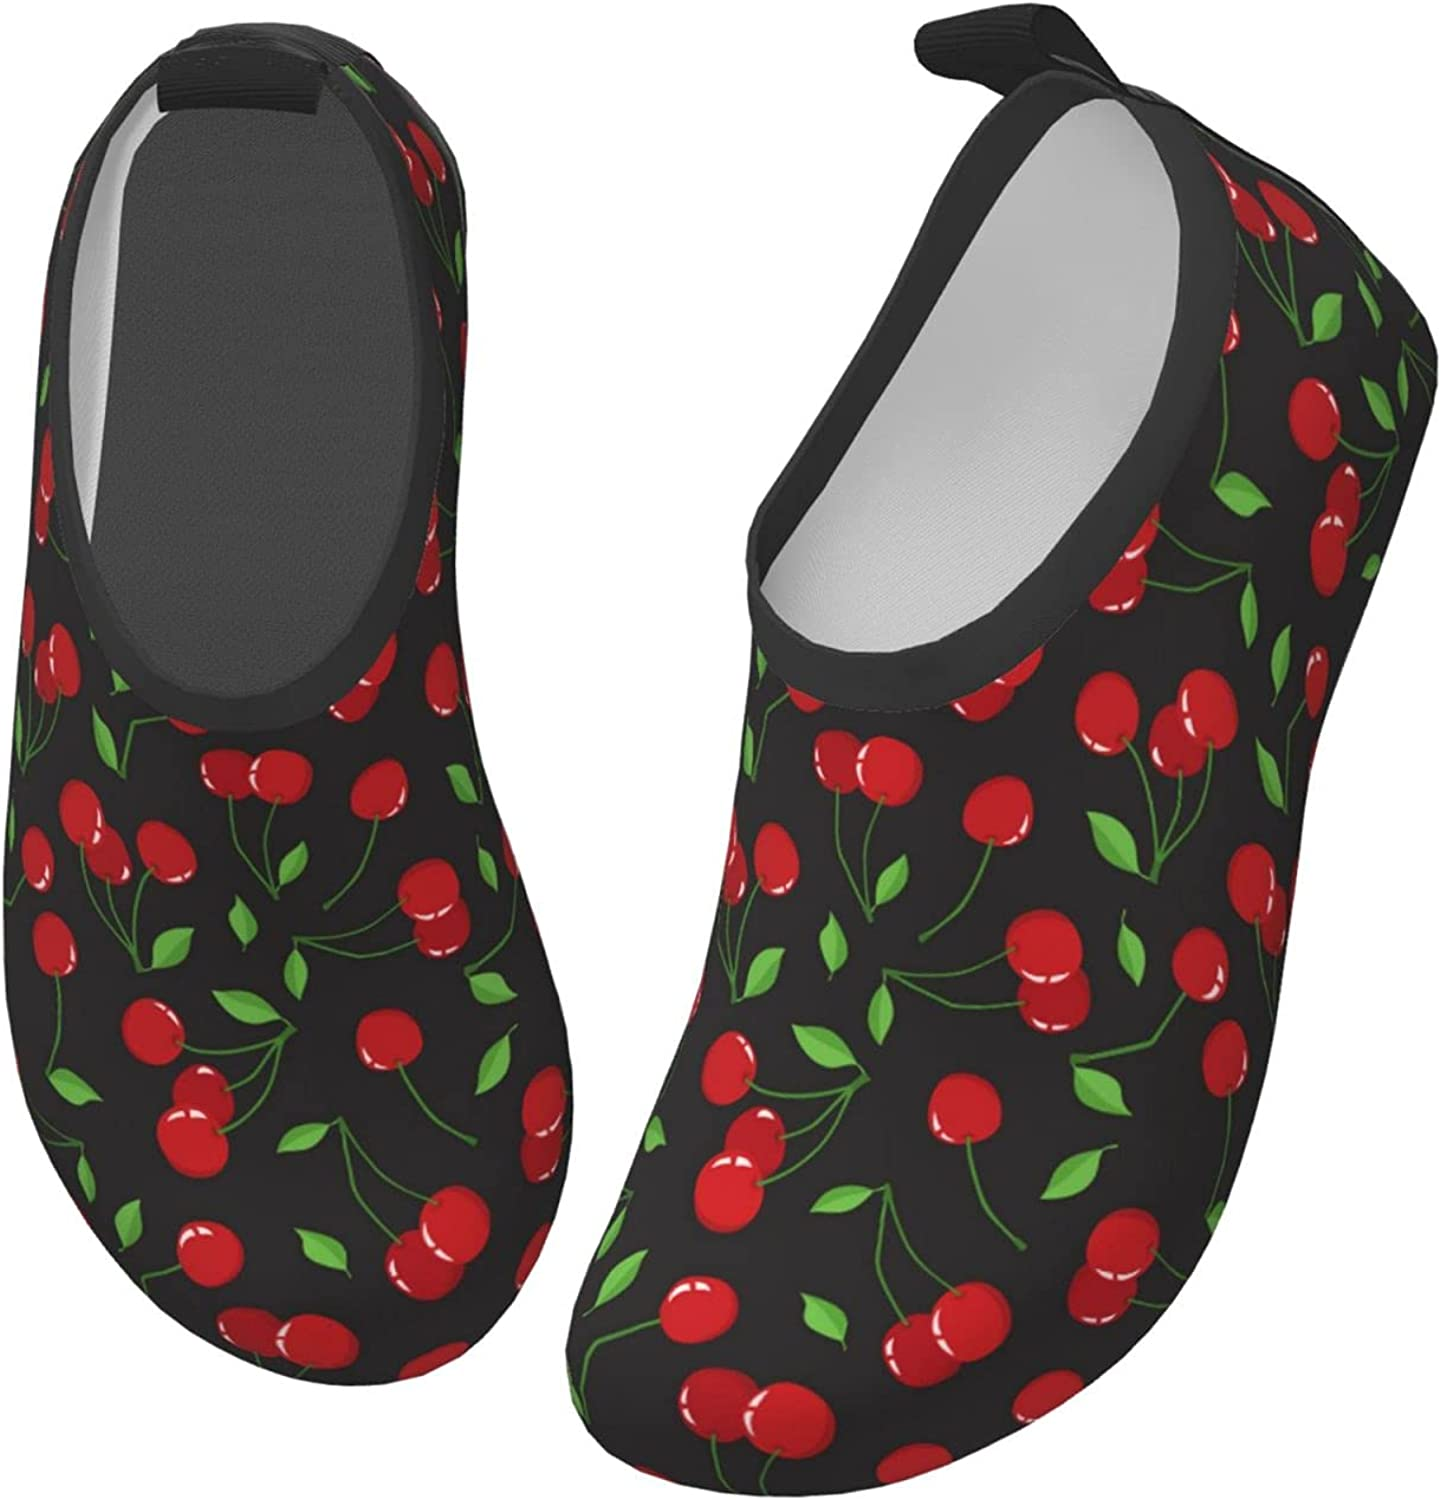 Cherry Cute Fruit Red Children's Water Shoes Feel Barefoot for Swimming Beach Boating Surfing Yoga